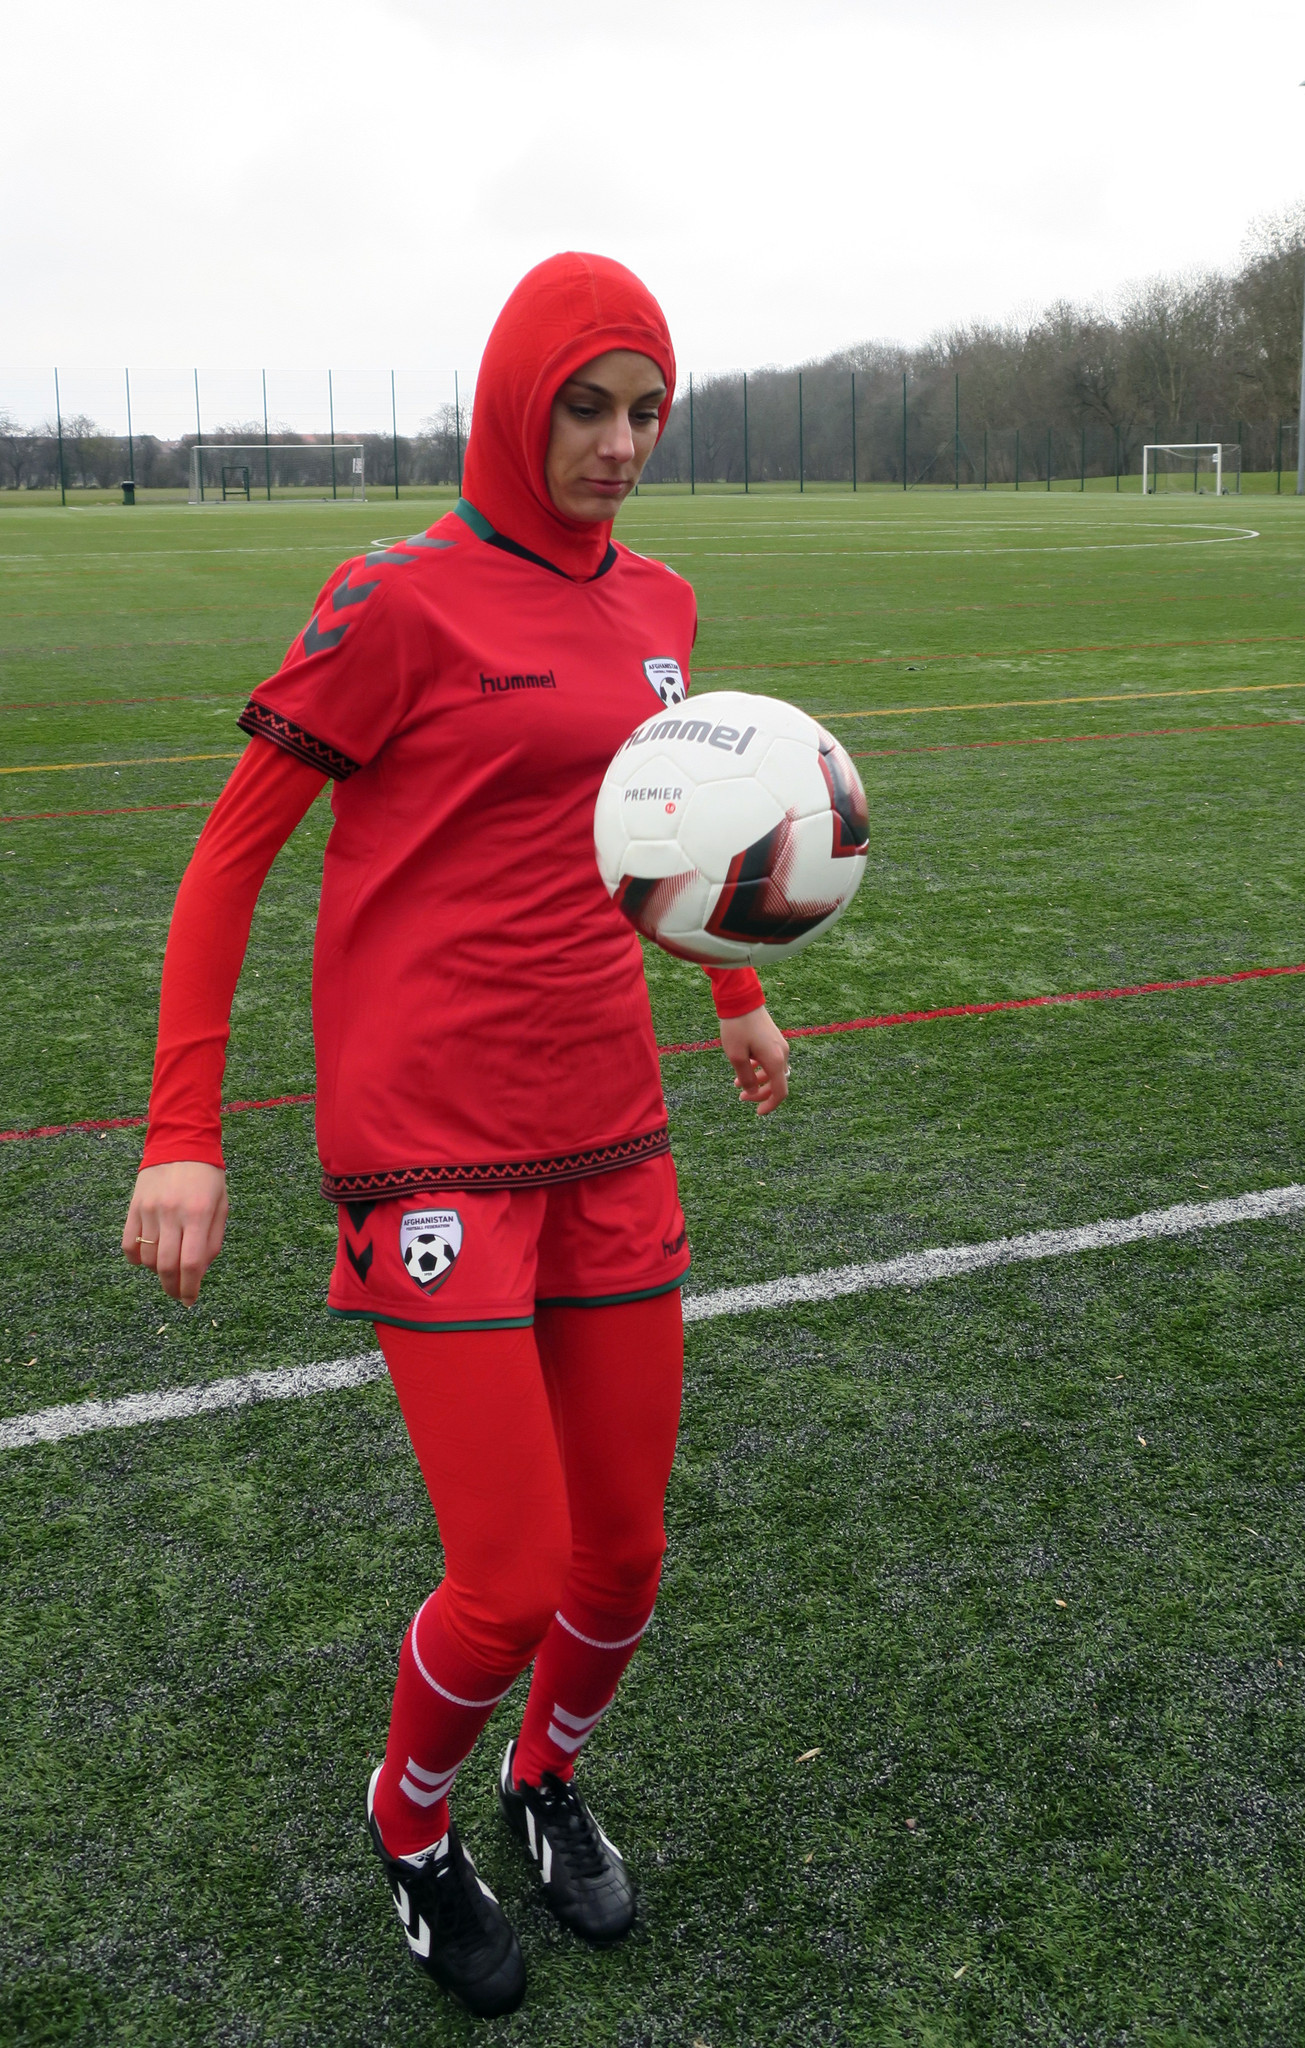 Afghani women s team gets jersey with integrated hijab - Chicago Tribune a148de920